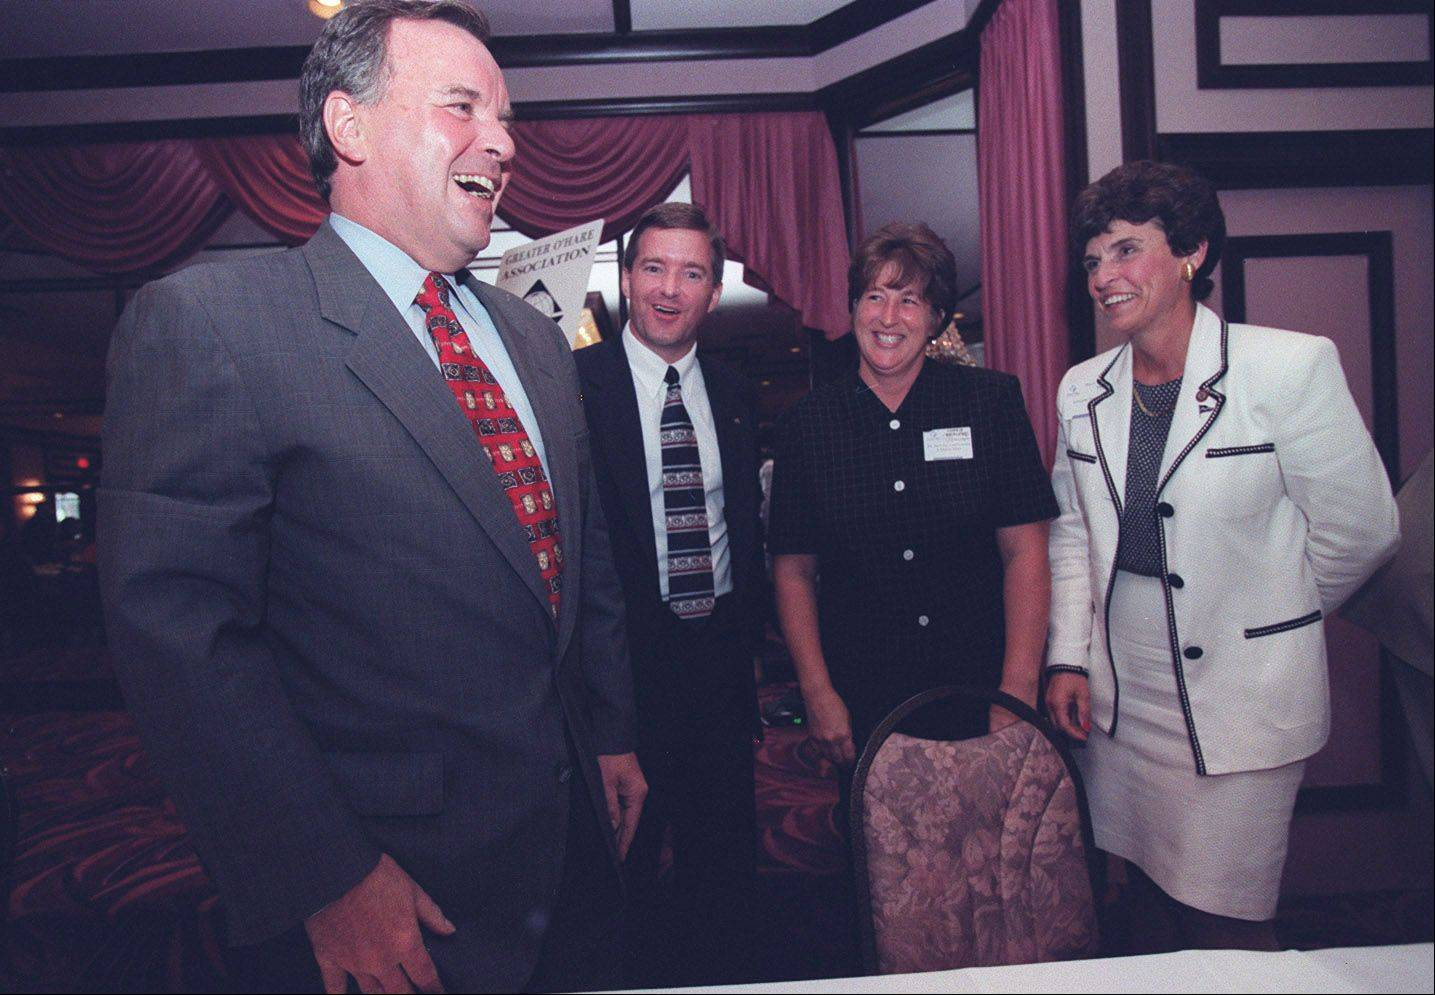 Mulder, far right, at a 1997 luncheon for the Greater O'Hare Association of Industry and Commerce with Chicago Mayor Richard M. Daley, Elk Grove Mayor Craig Johnson and Lisa Zeigler, vice president of marketing and communications with the GOA.